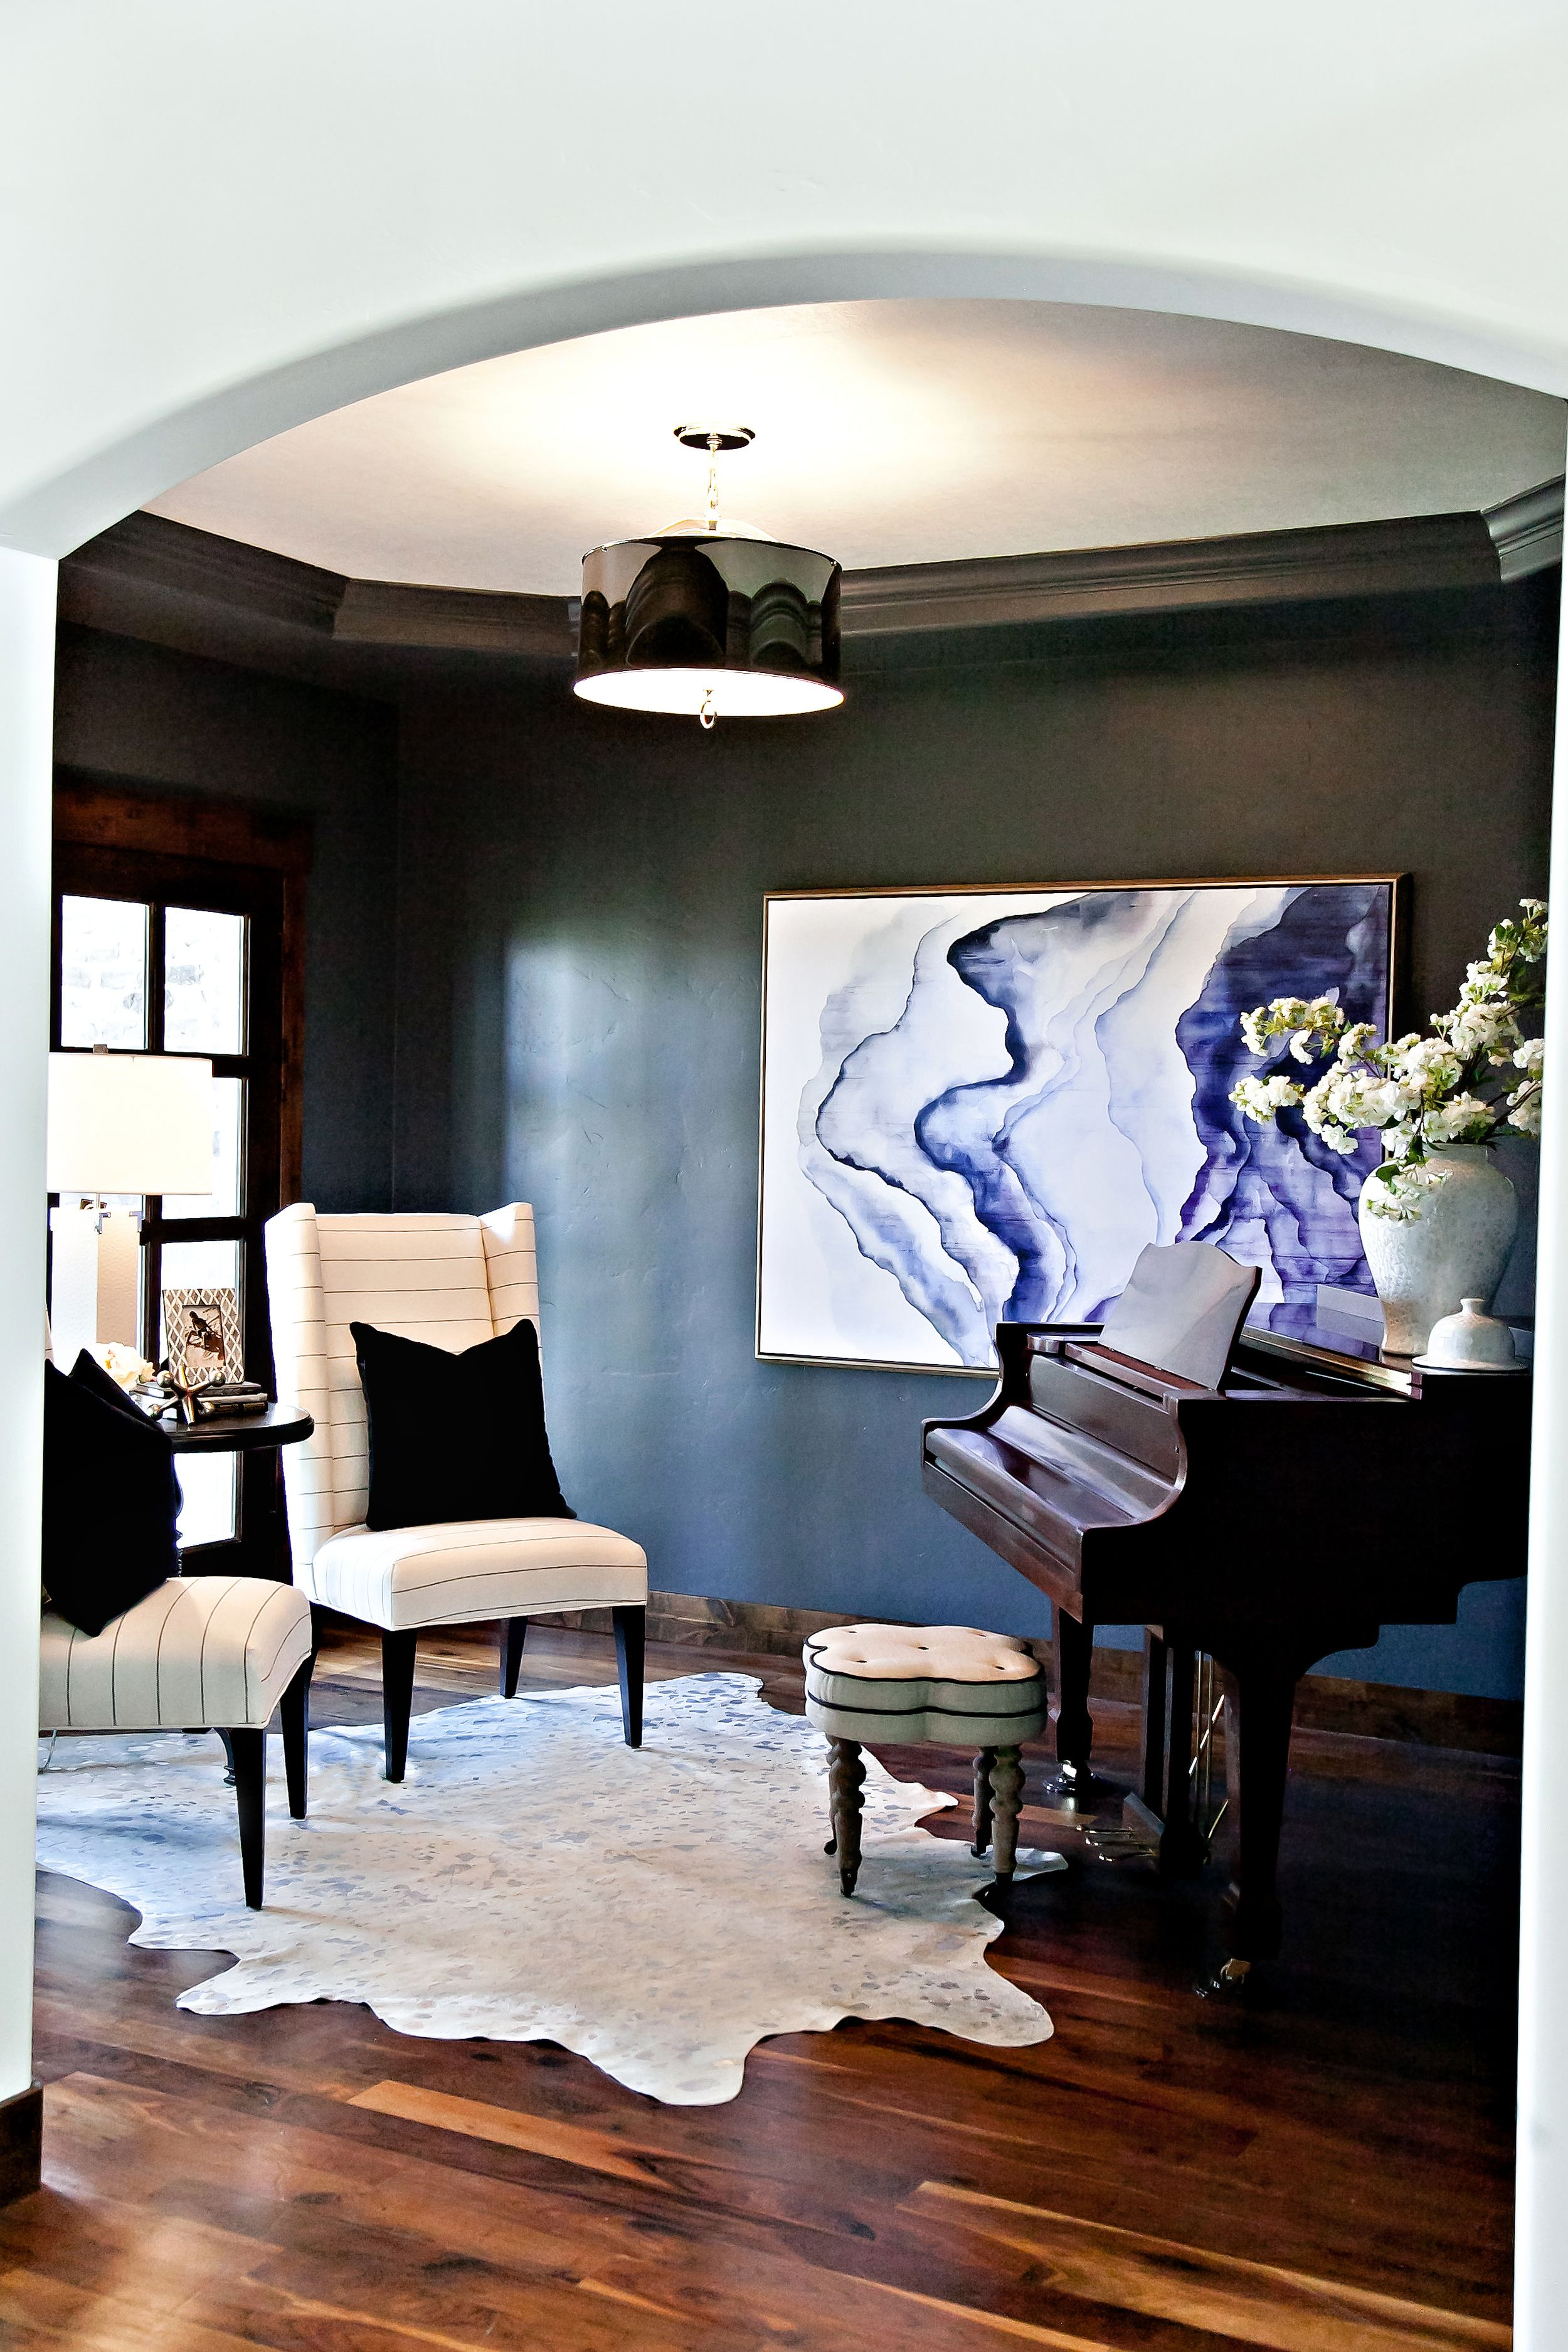 Artwork For Formal Living Room Images Of Decor Ideas Sitting With Metallic Cowhide Rug Navy Walls Grand Piano And Abstract Indigo Ink